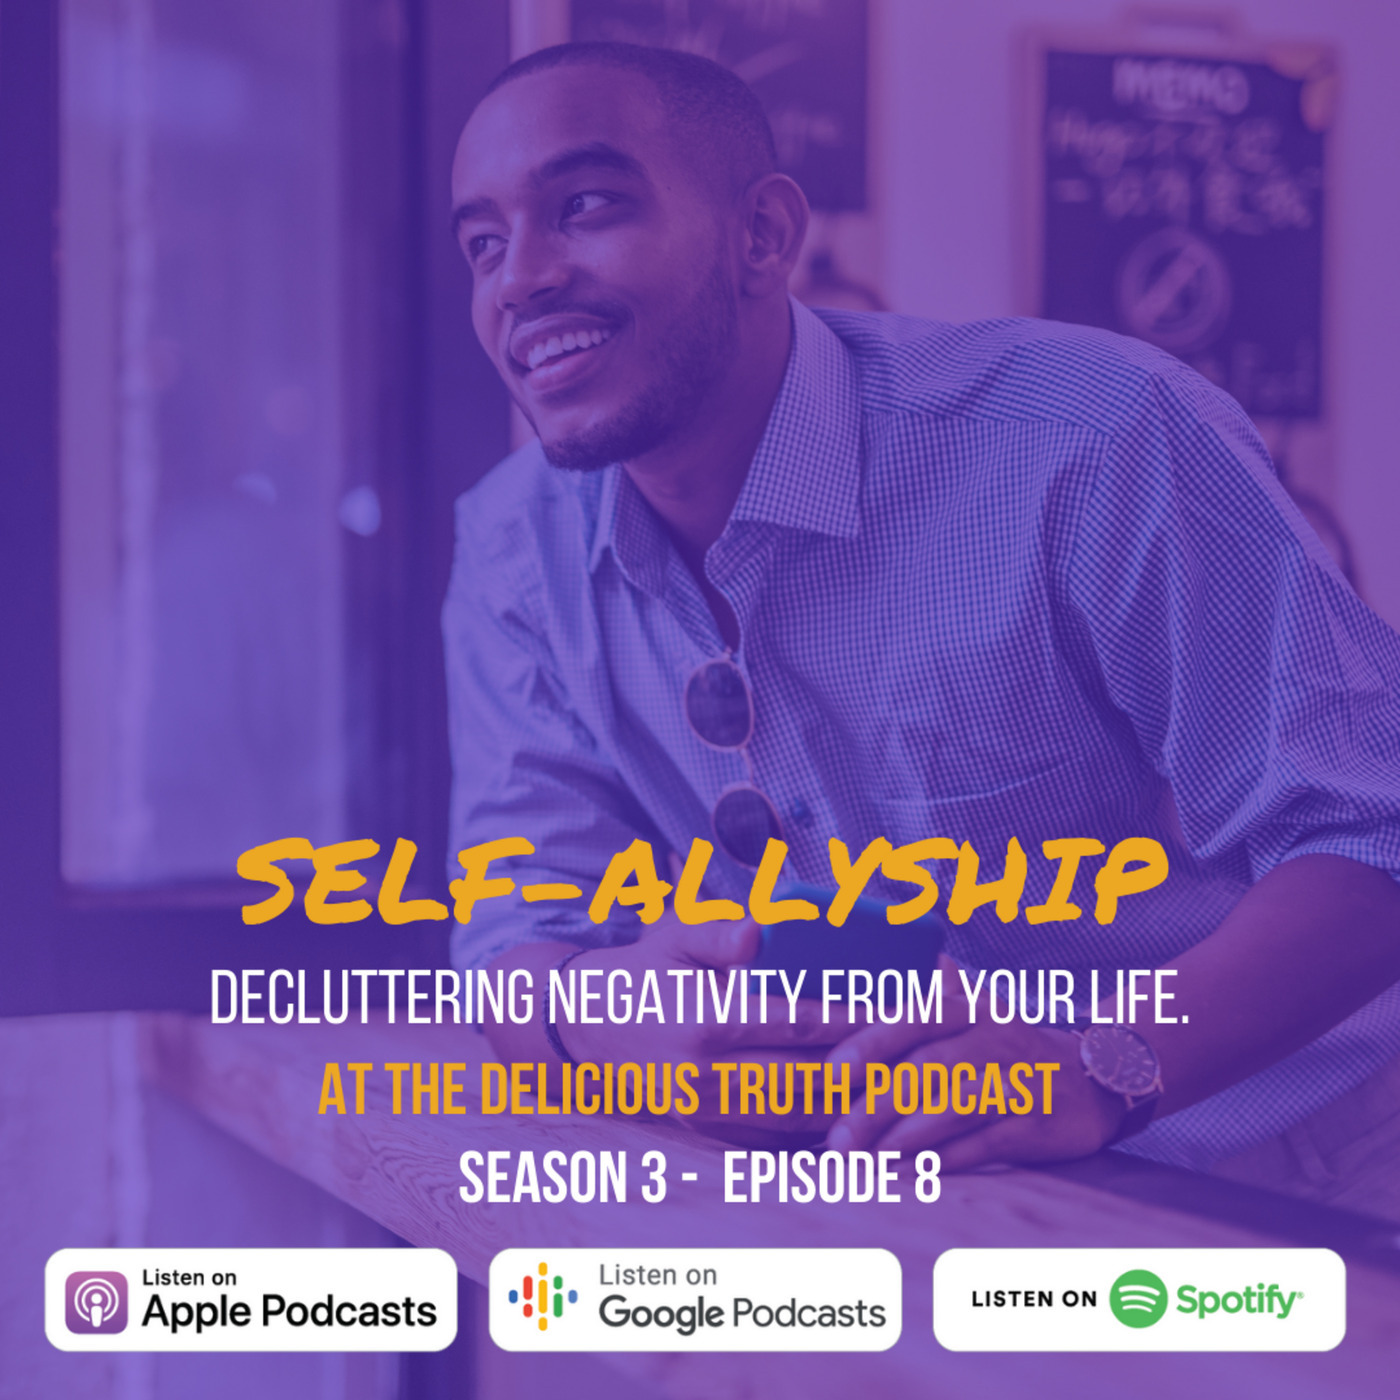 The Delicious Truth Podcast: Season 3 - Episode 8: Self-Allyship, Decluttering Negativity From Your Life.